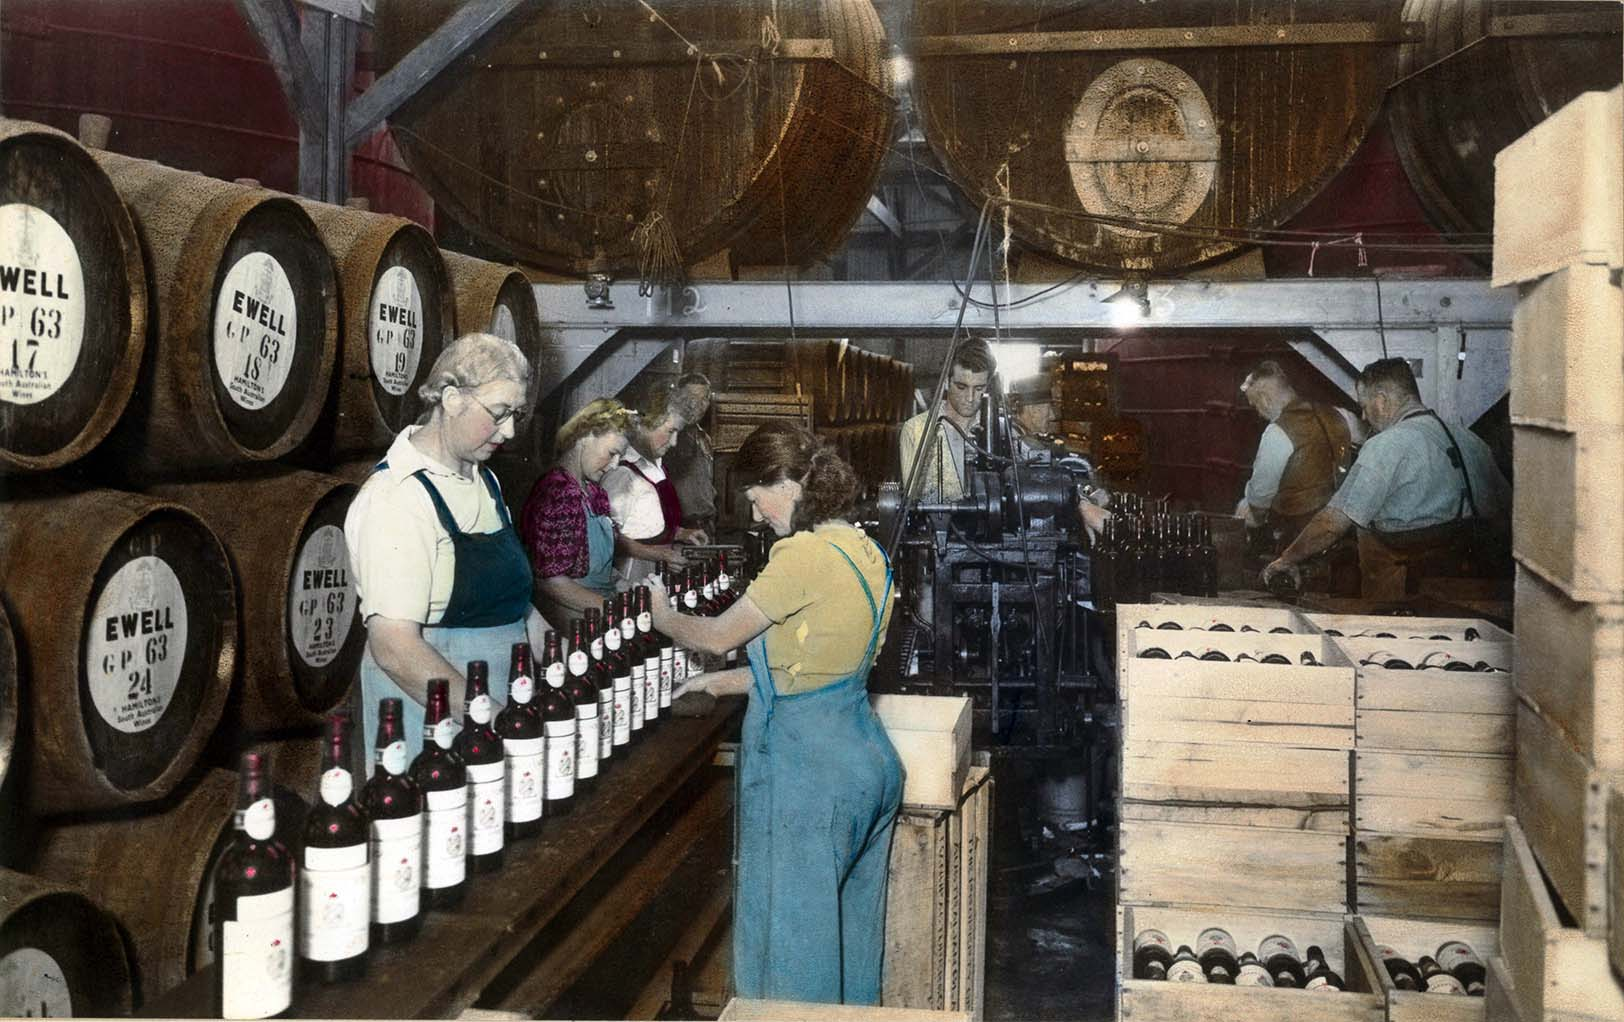 Bottling Line at Hamiltons Ewell Winery c1947